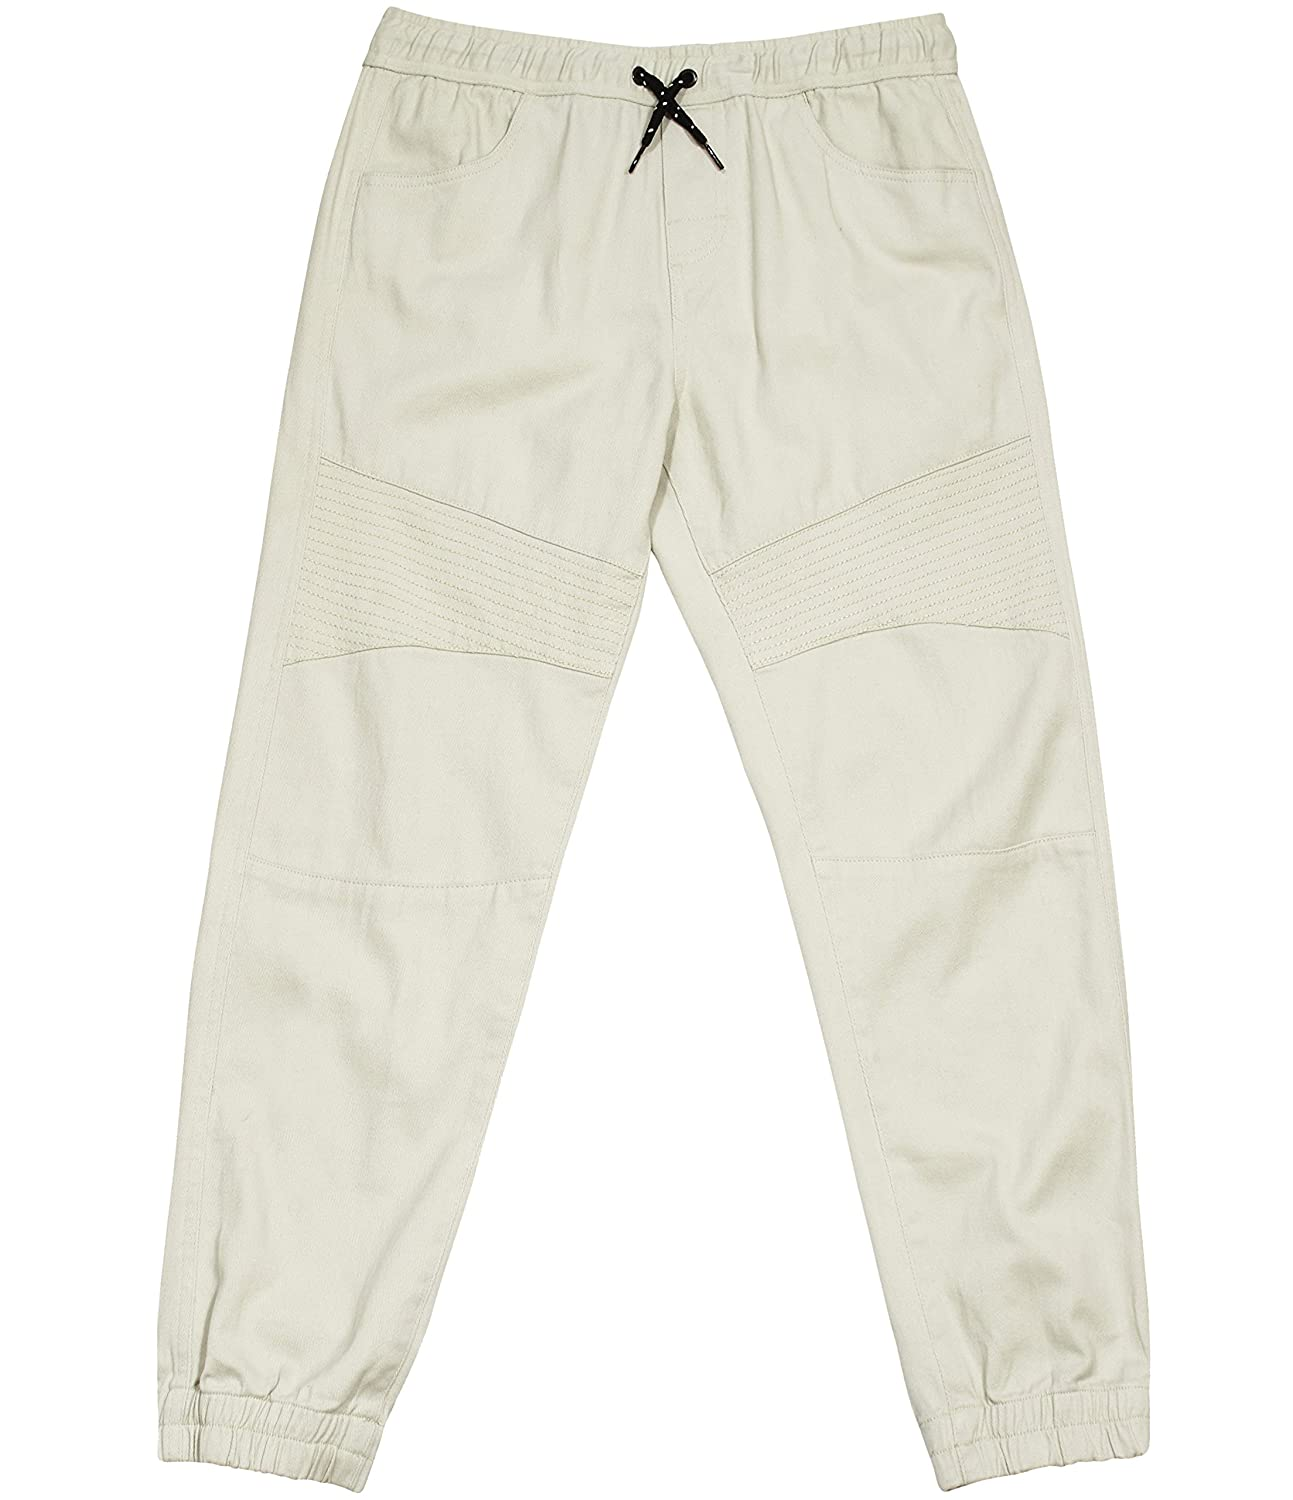 d36585e00 Top1: Tony Hawk Kids Boys Cotton Stretch Twill Jogger Pants with Drawstring  and Pockets School Clothes Pants